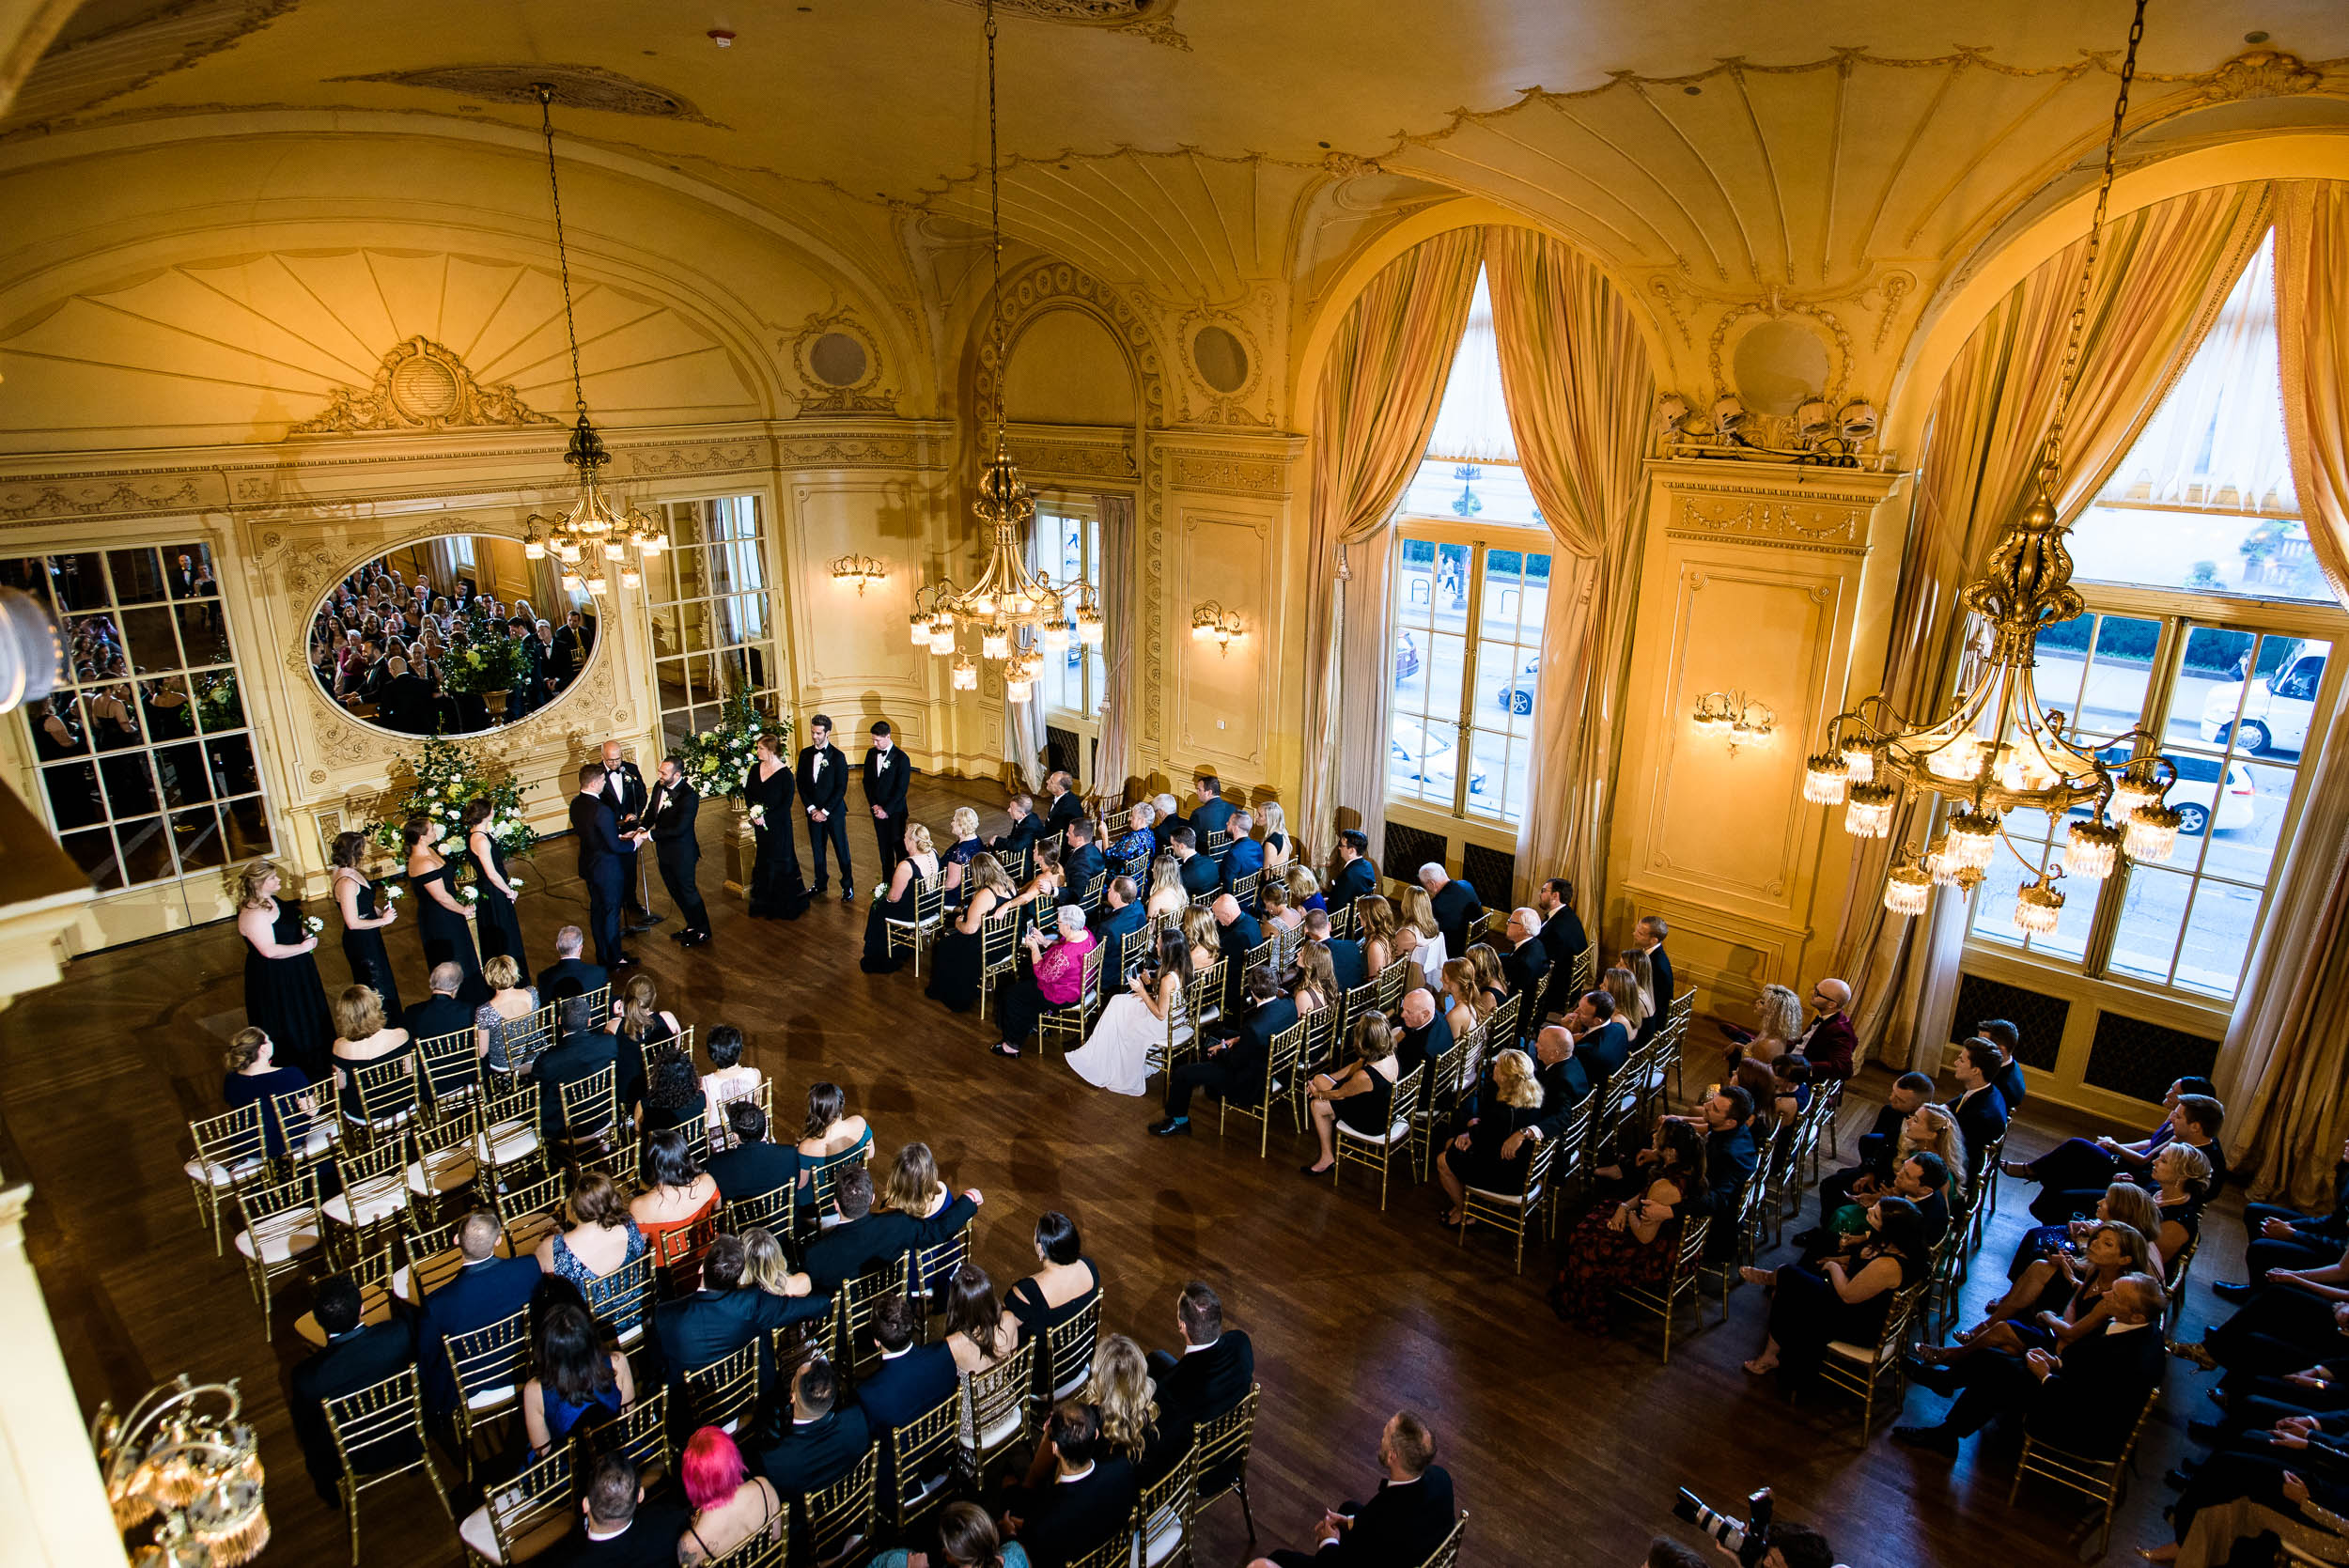 Romantic wedding ceremony for luxurious fall wedding at the Chicago Symphony Center captured by J. Brown Photography. See more wedding ideas at jbrownphotography.com!